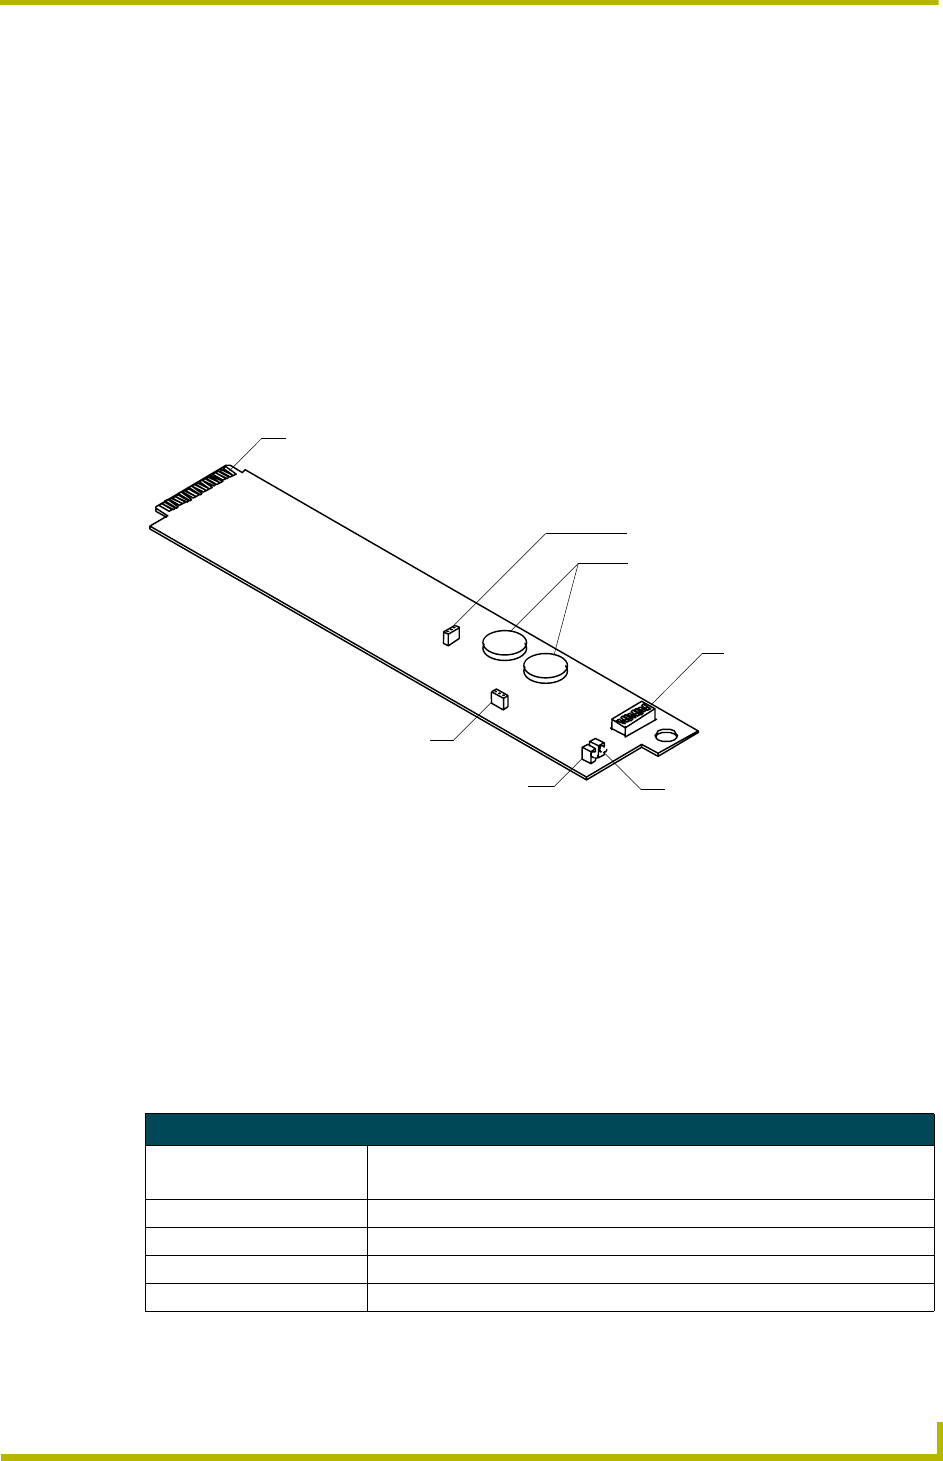 Amx Rs 232 422 485 Interface Card Axc Users Manual 0311737 Airplane Wing Diagram Introduction